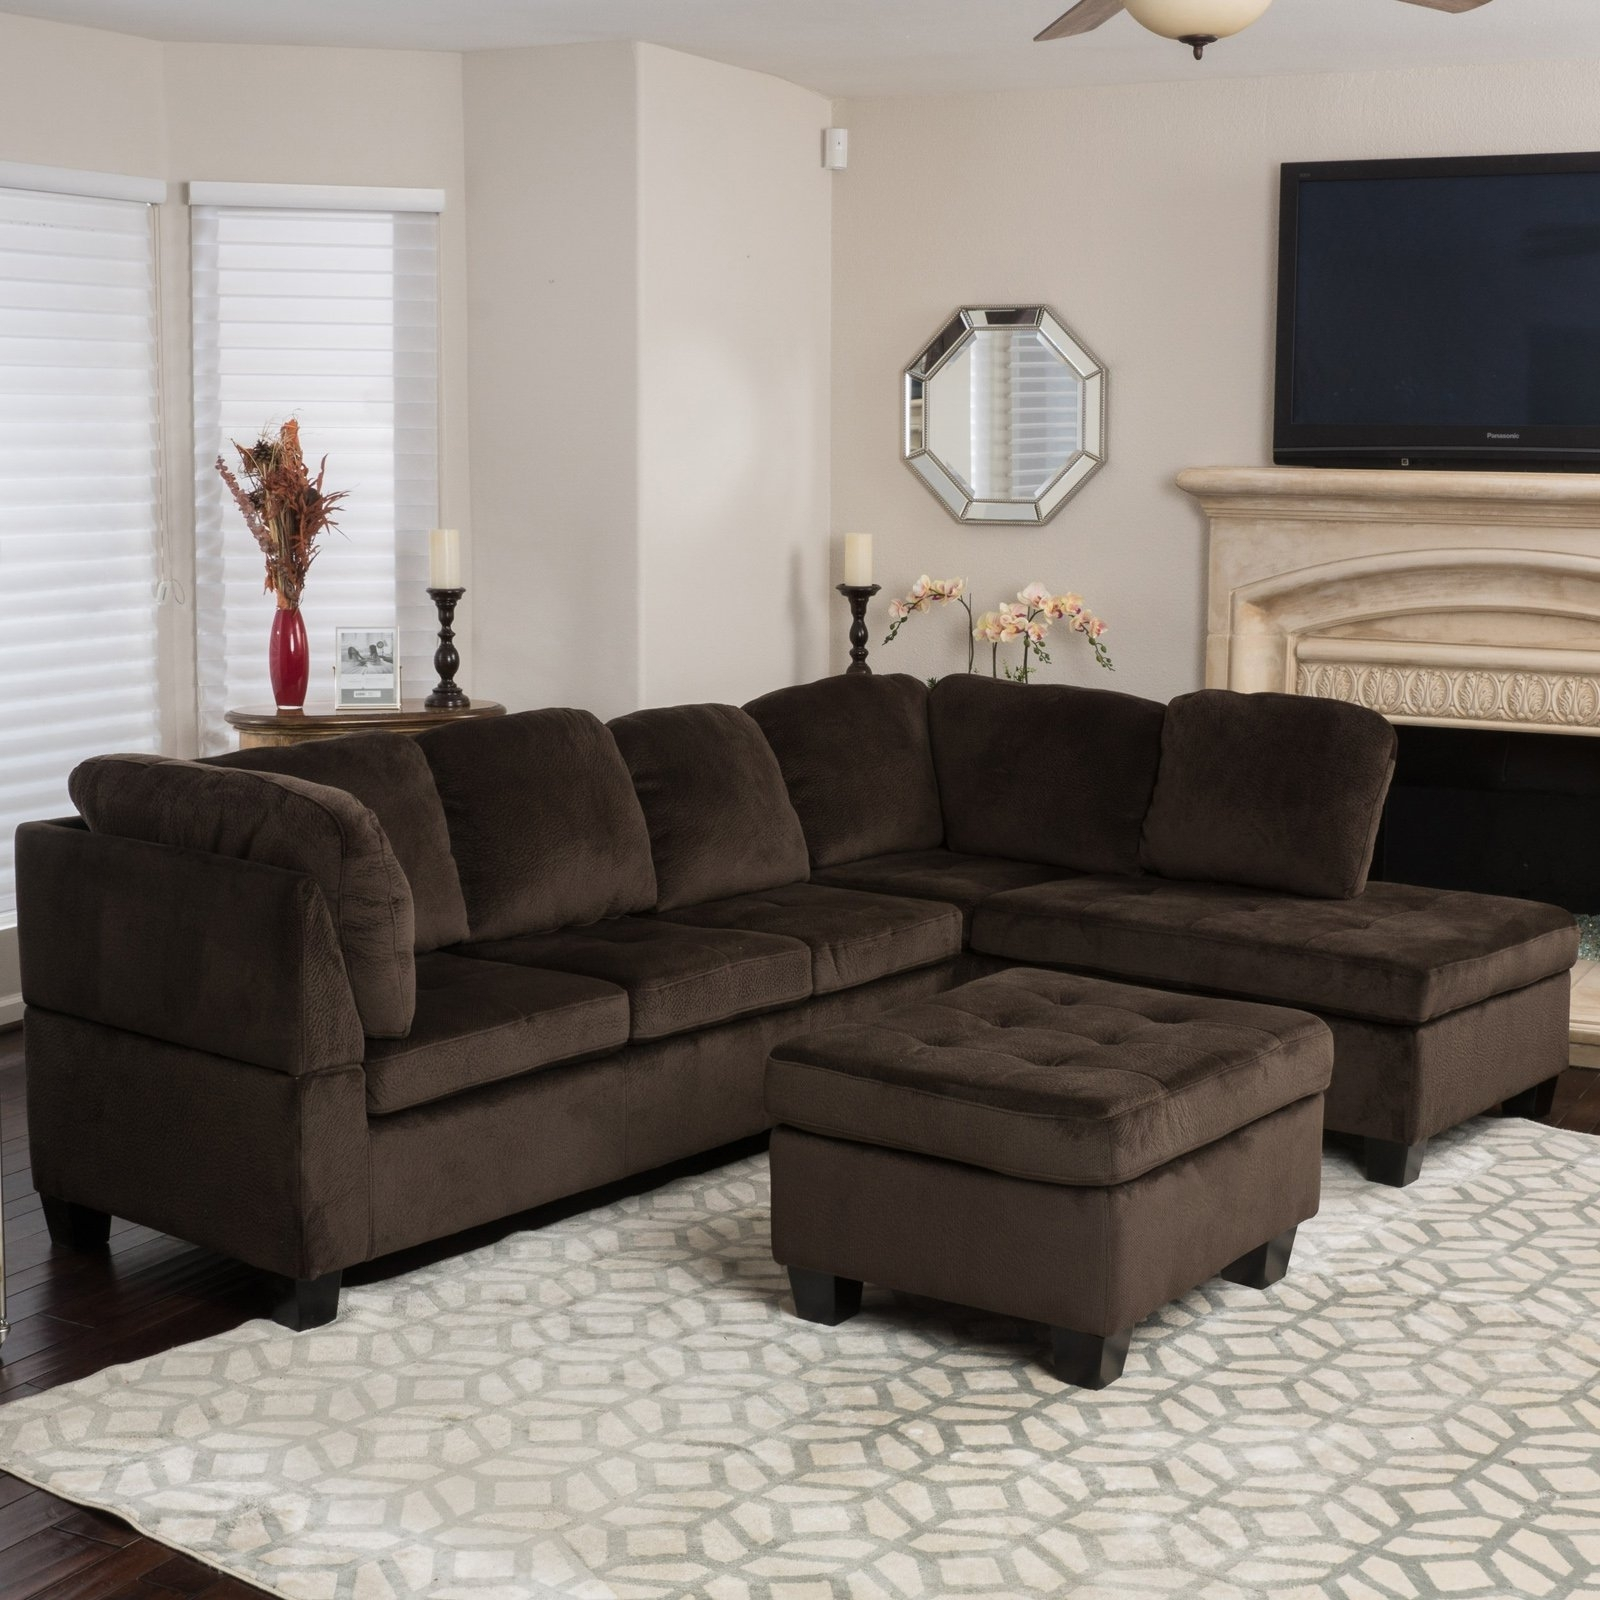 3 Piece Sectional Sofa Dimensions | Baci Living Room With Regard To Malbry Point 3 Piece Sectionals With Raf Chaise (View 17 of 30)